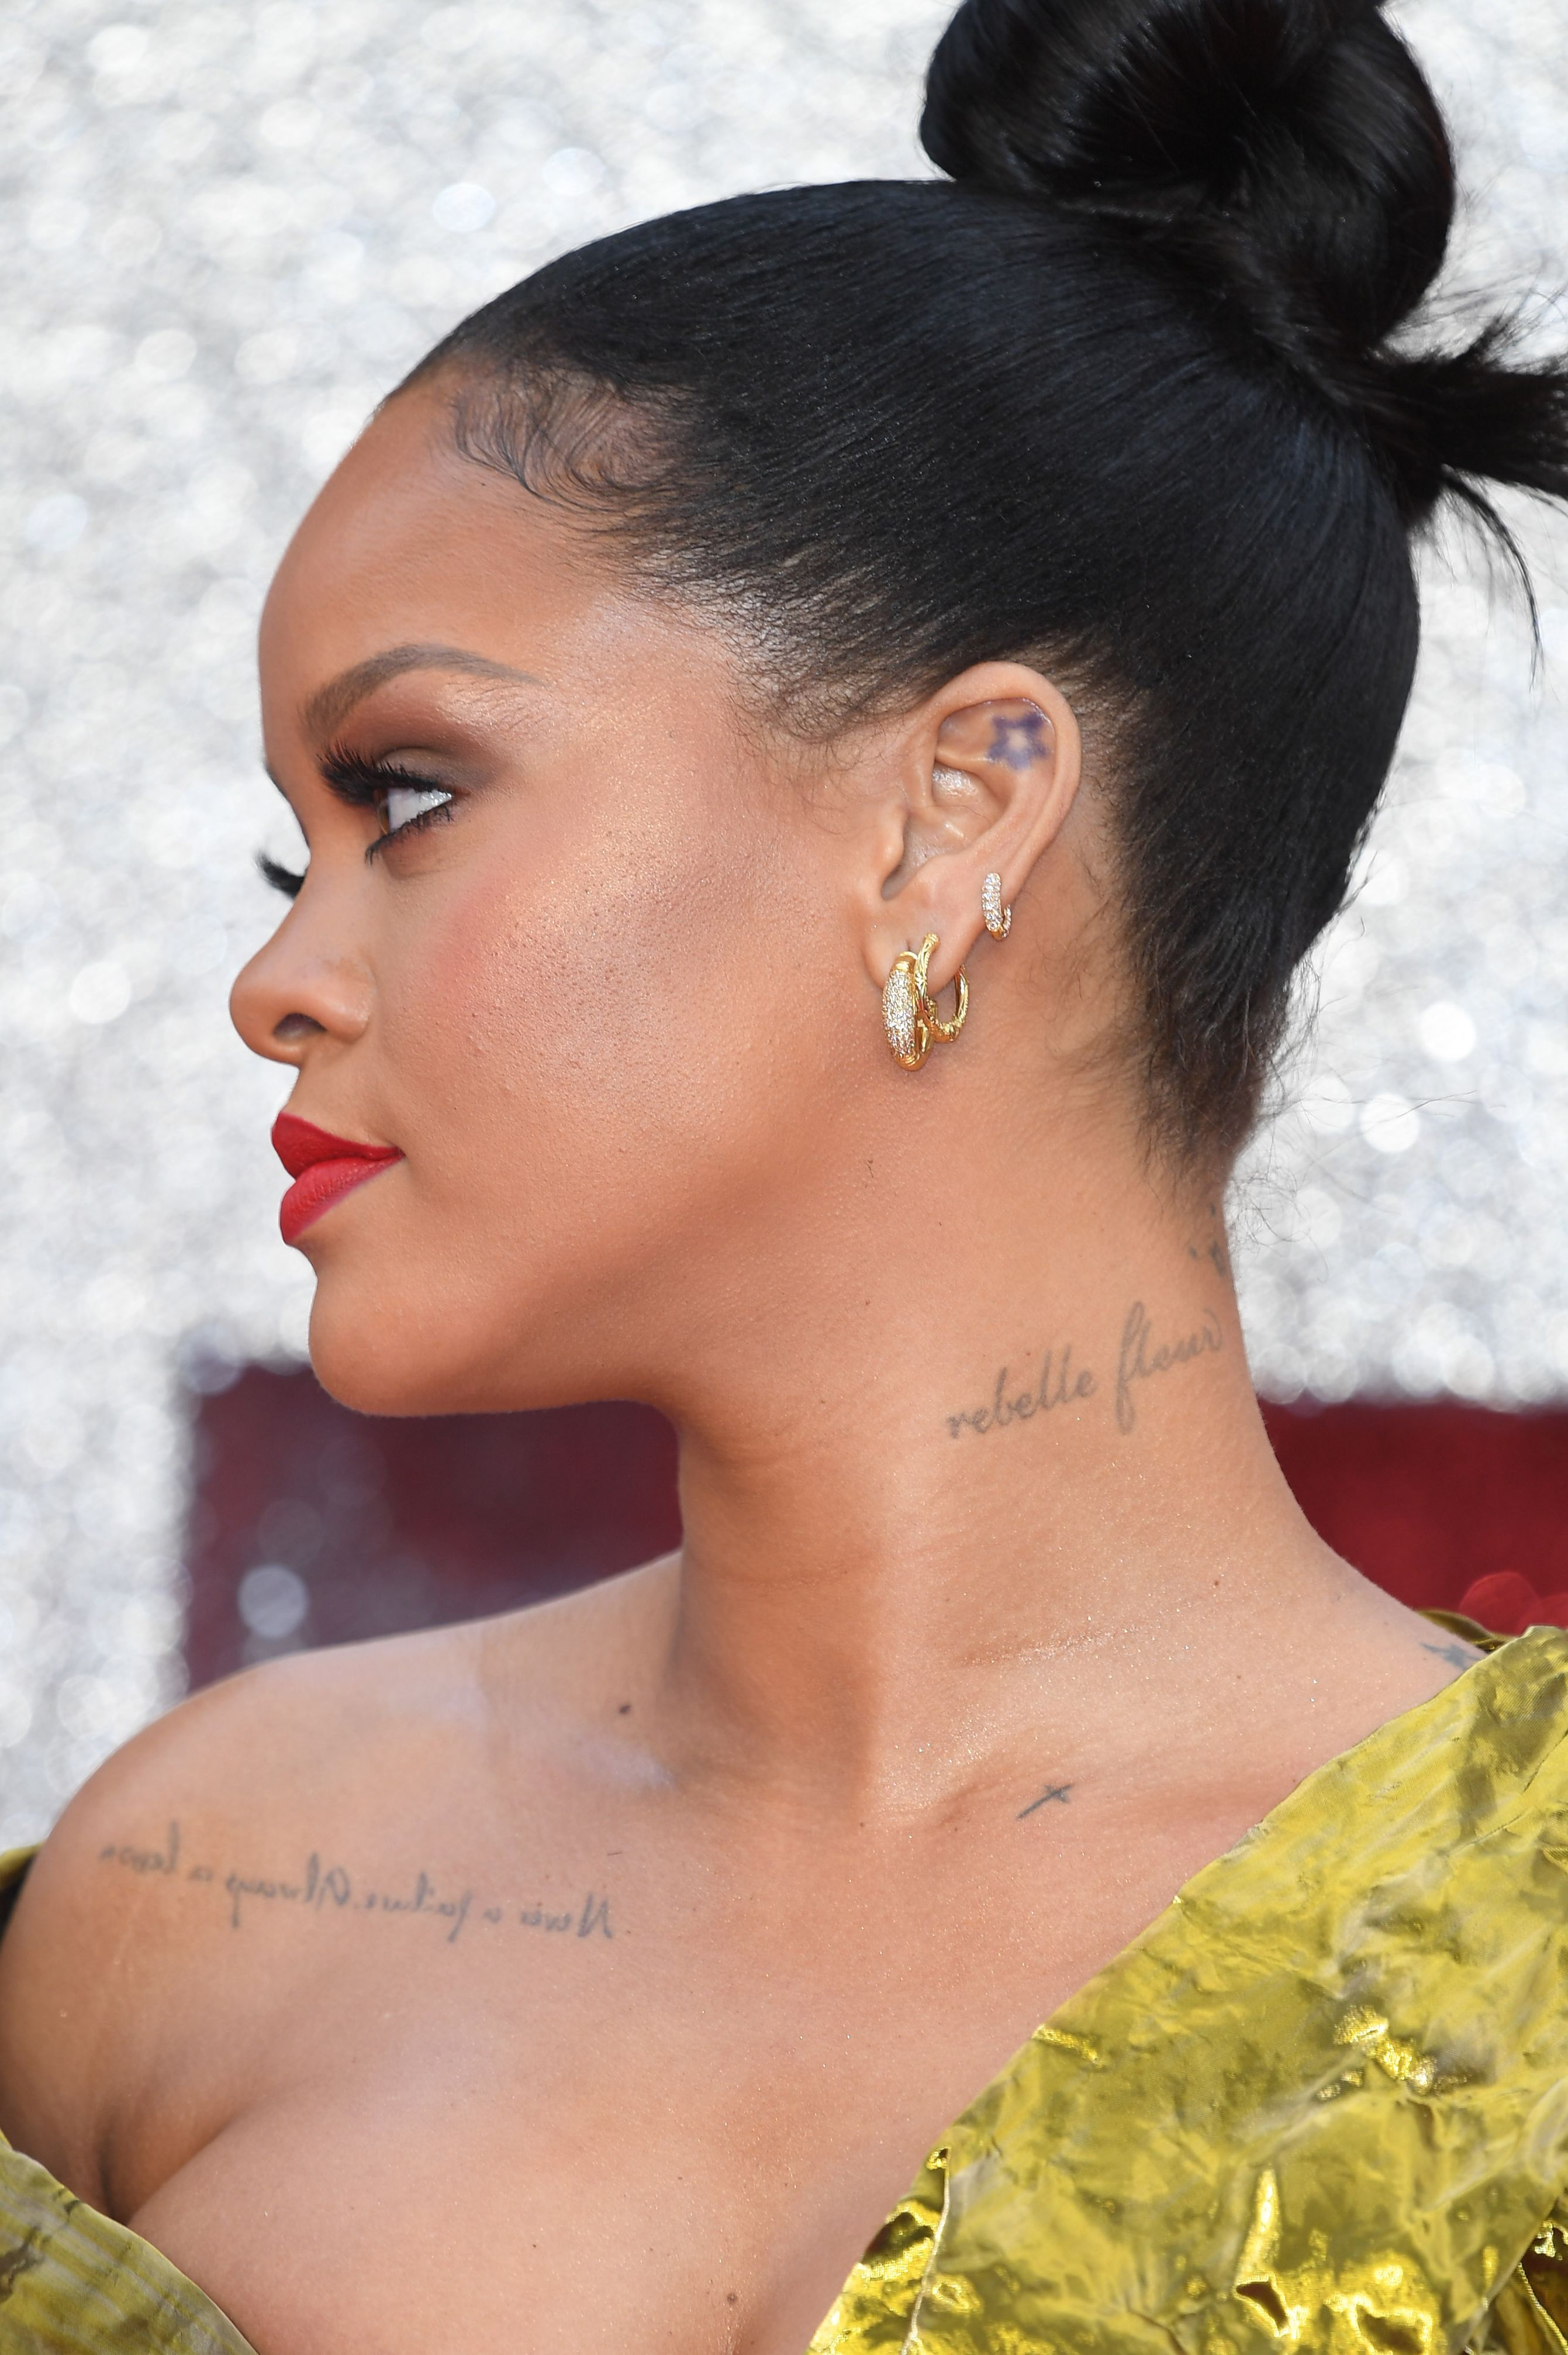 rihanna ear piercings